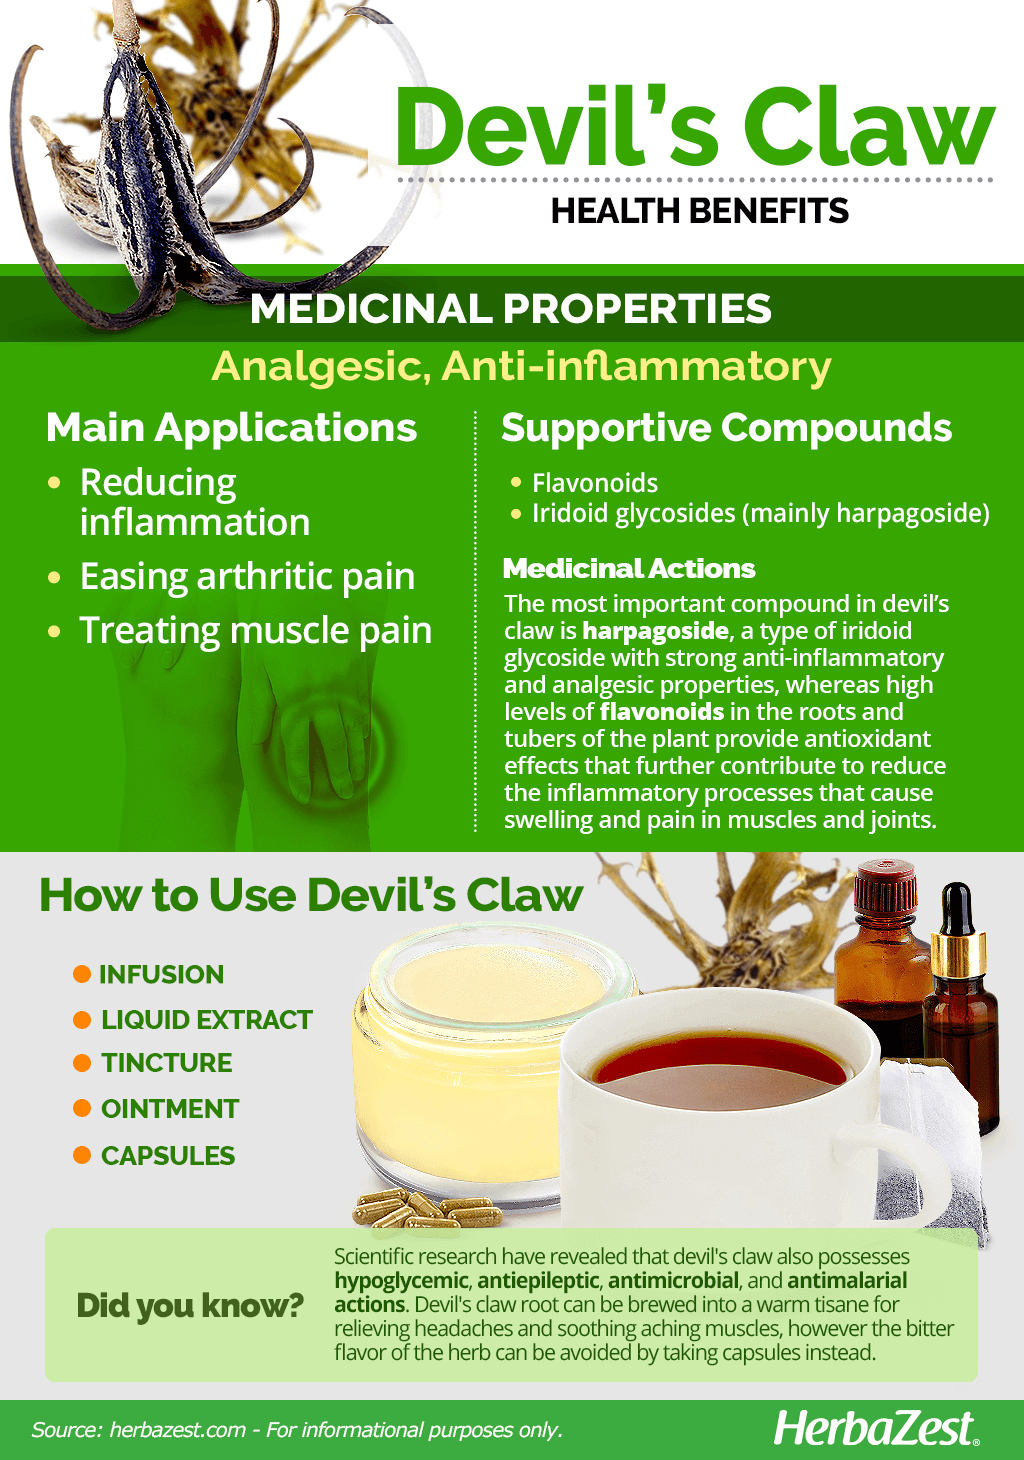 All About Devil's Claw